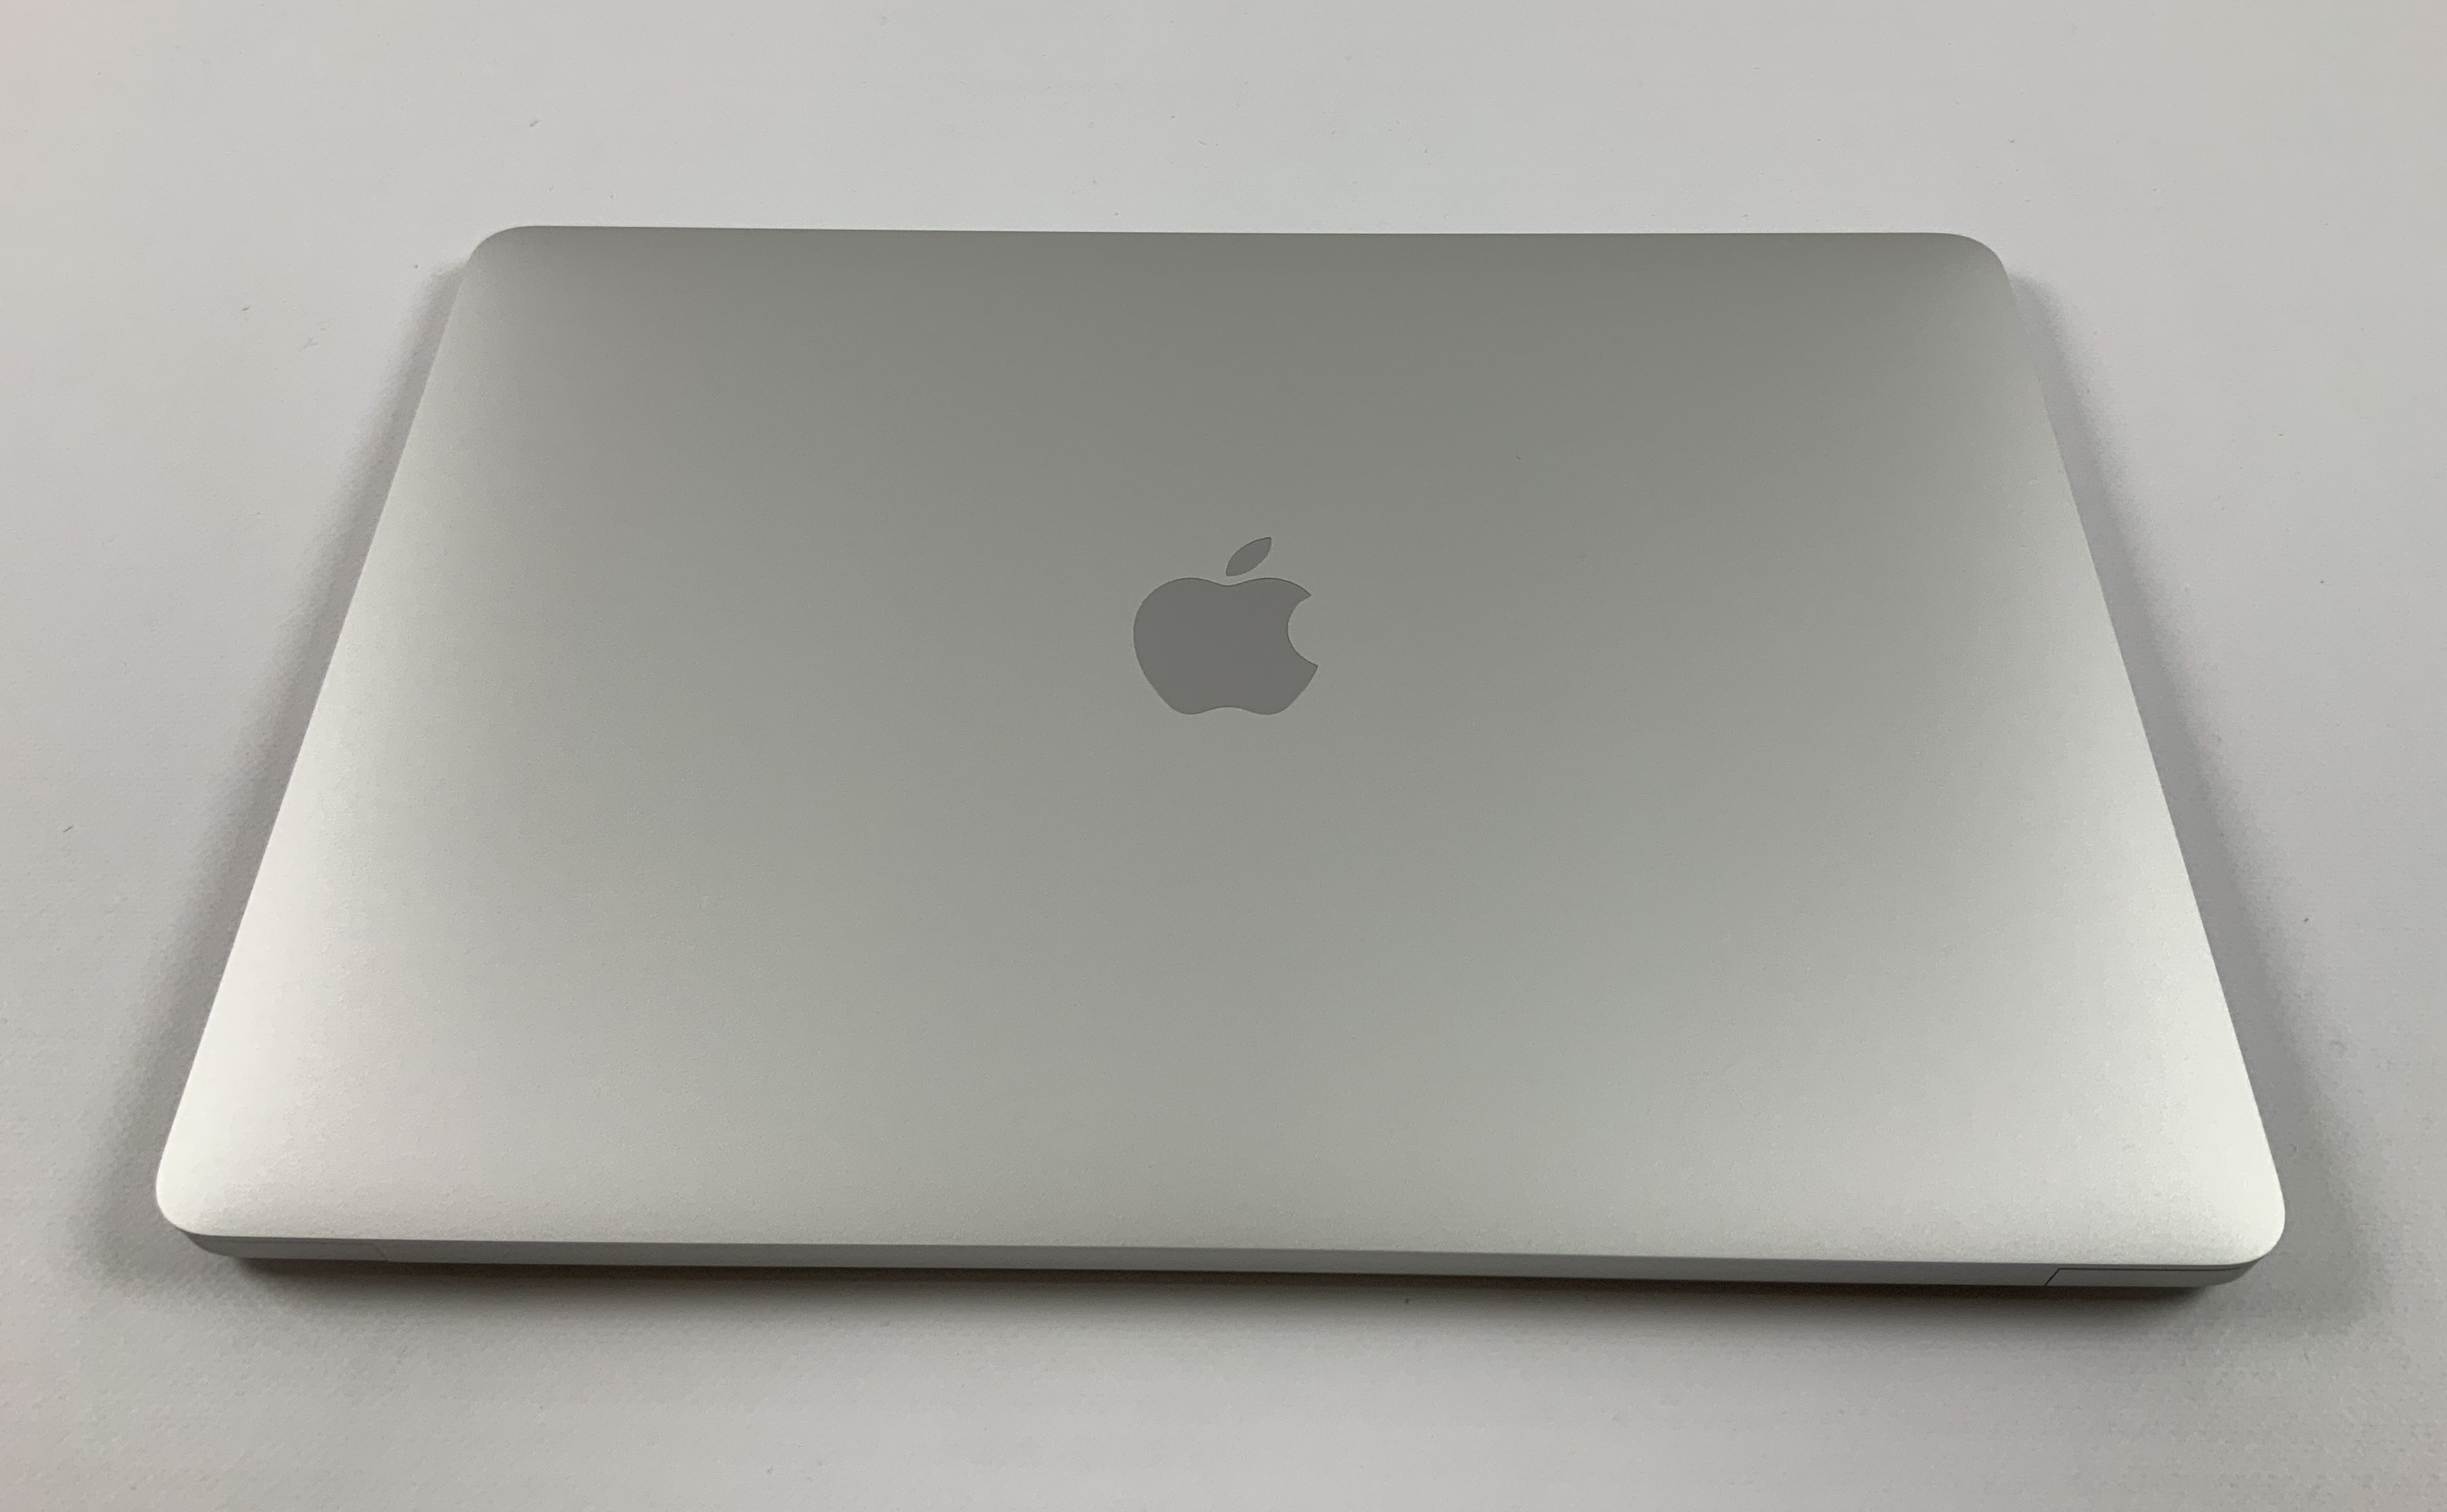 "MacBook Air 13"" Late 2018 (Intel Core i5 1.6 GHz 16 GB RAM 256 GB SSD), Silver, Intel Core i5 1.6 GHz, 16 GB RAM, 256 GB SSD, imagen 2"